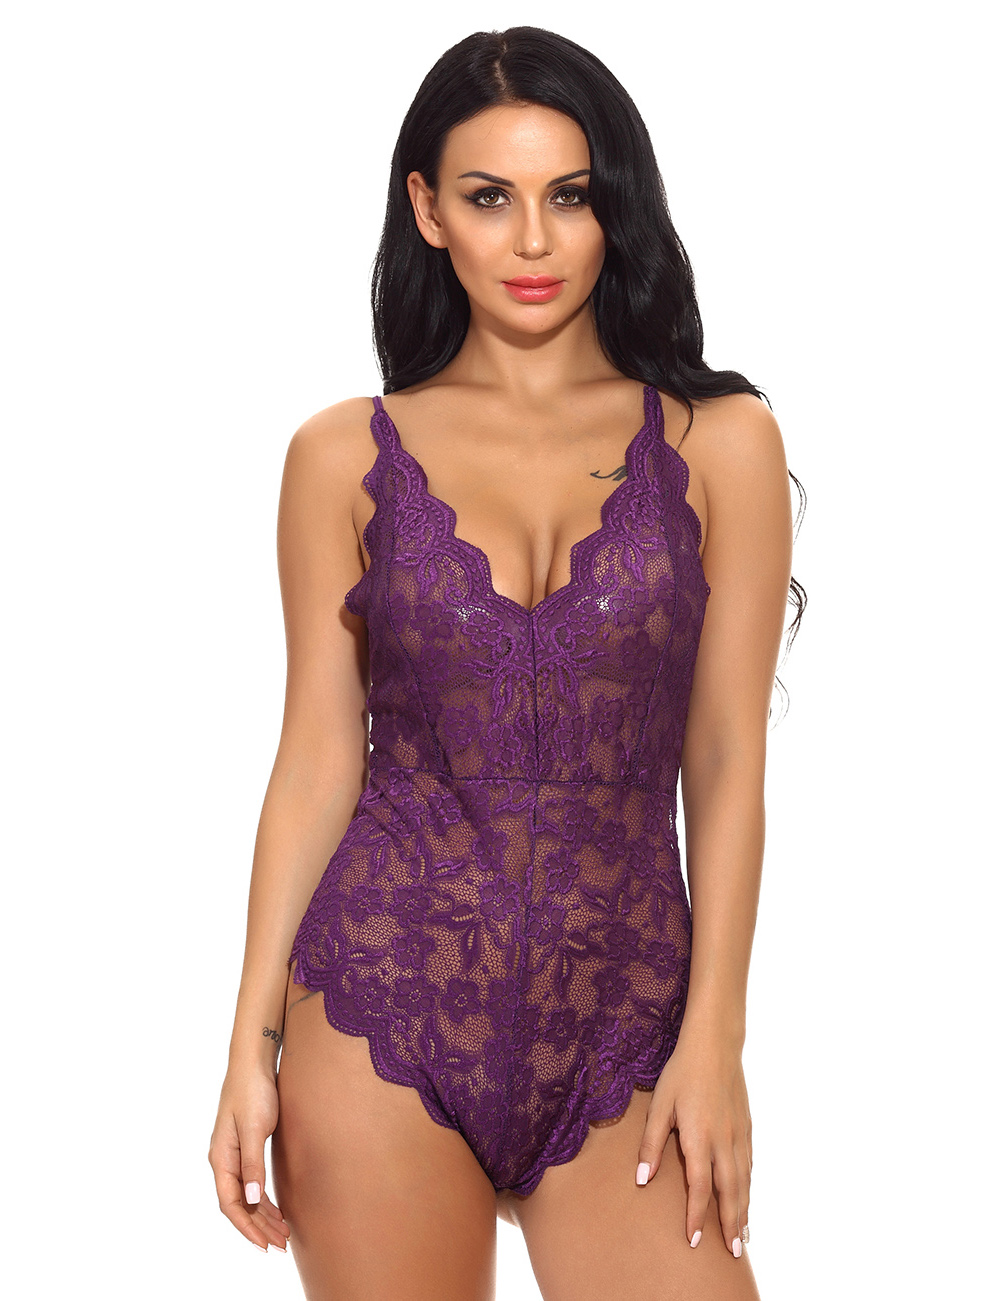 //cdn.affectcloud.com/hexinfashion/upload/imgs/Lingerie/Teddies/E180128-PL1/E180128-PL1-201911055dc154c288b2a.jpg